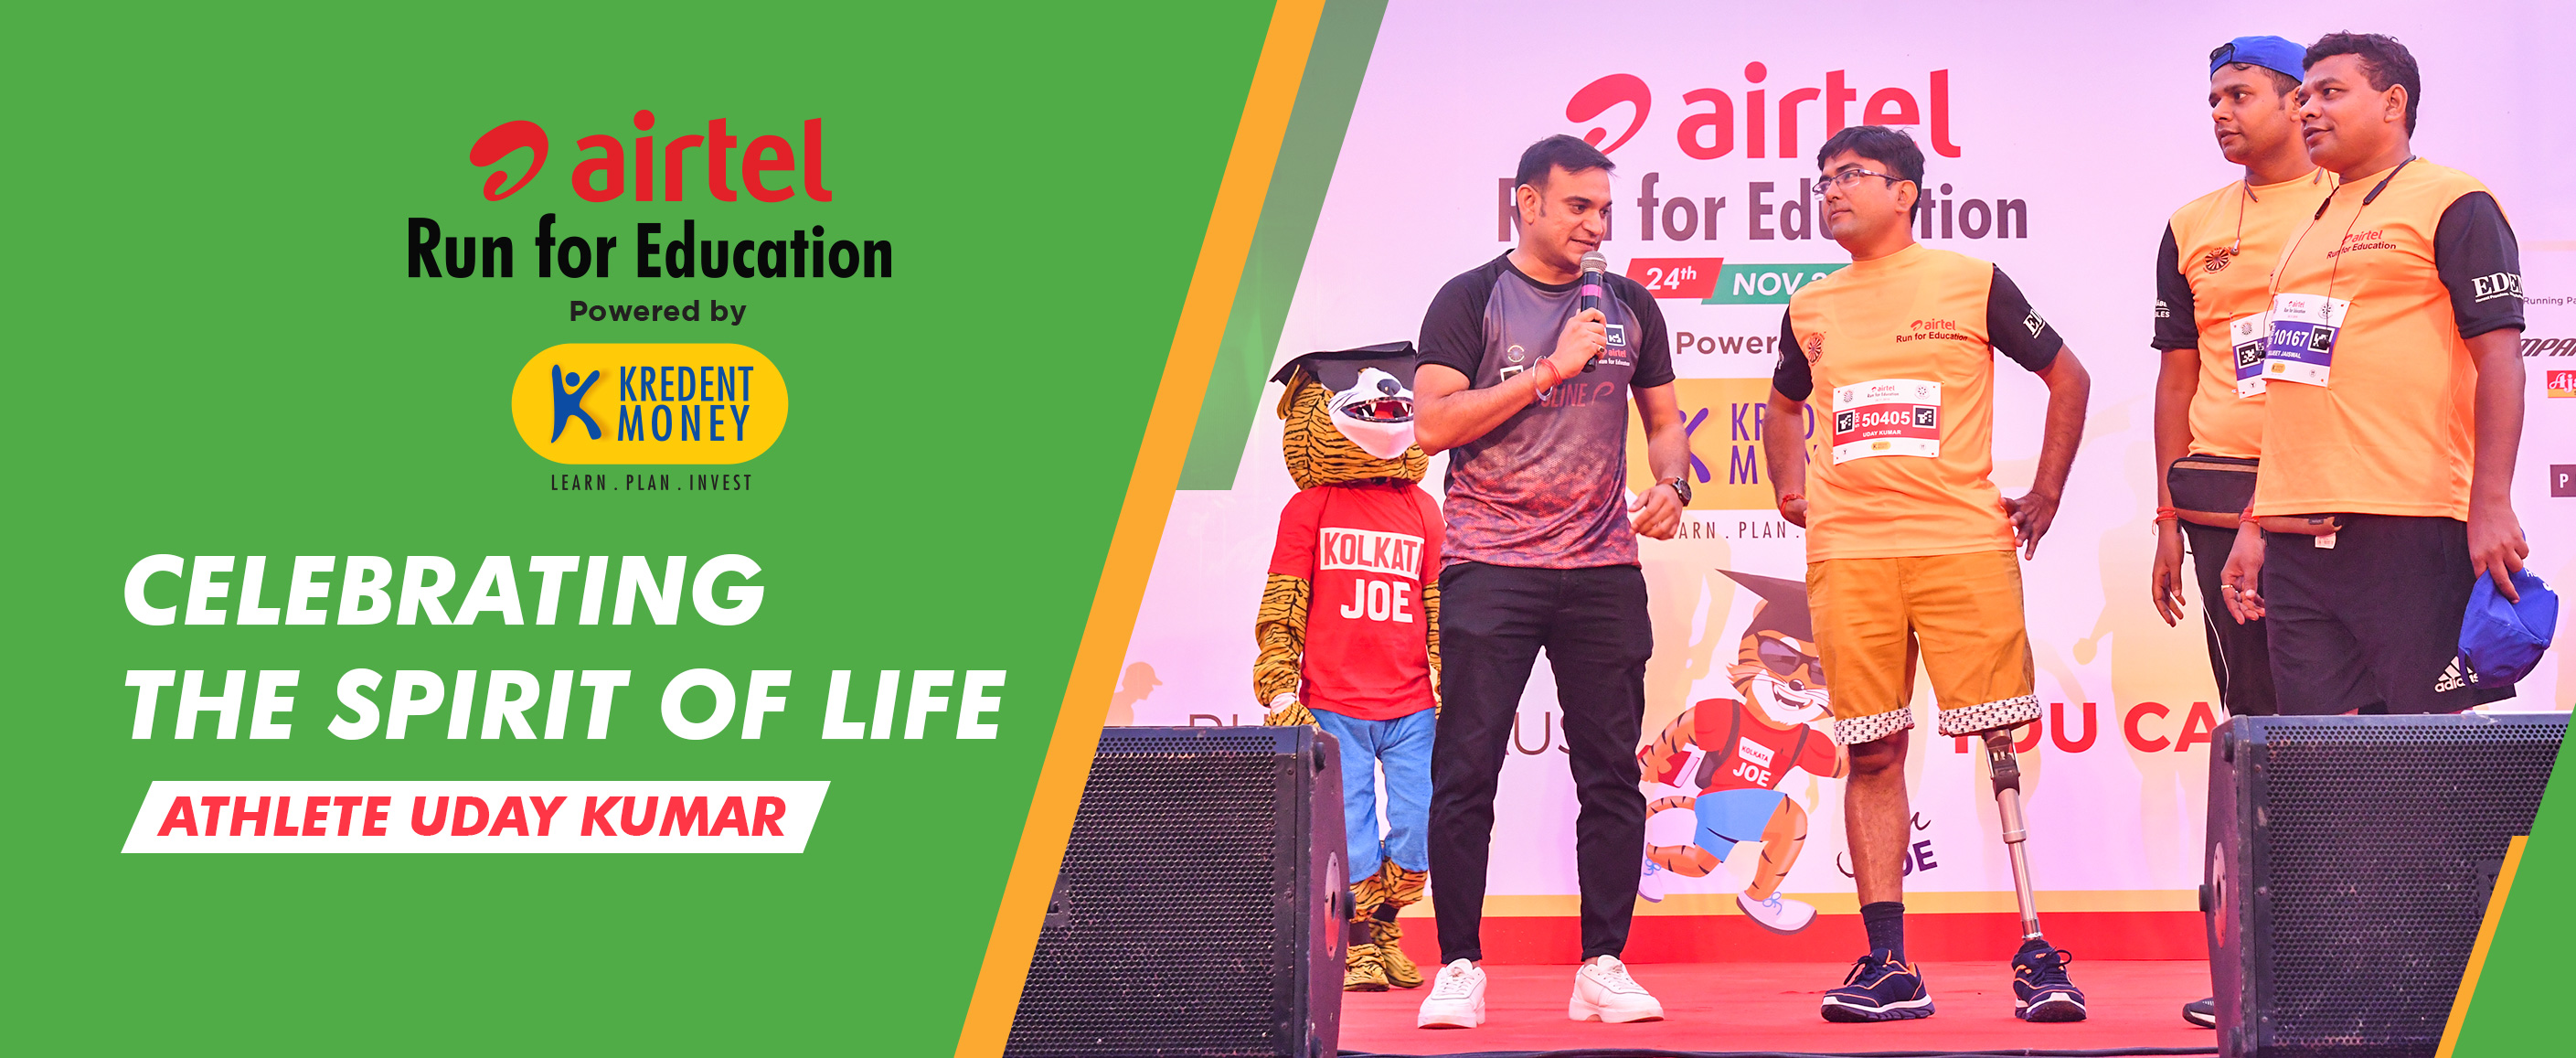 Celebrating The Spirit Of Life With Amputee Athlete Uday Kumar